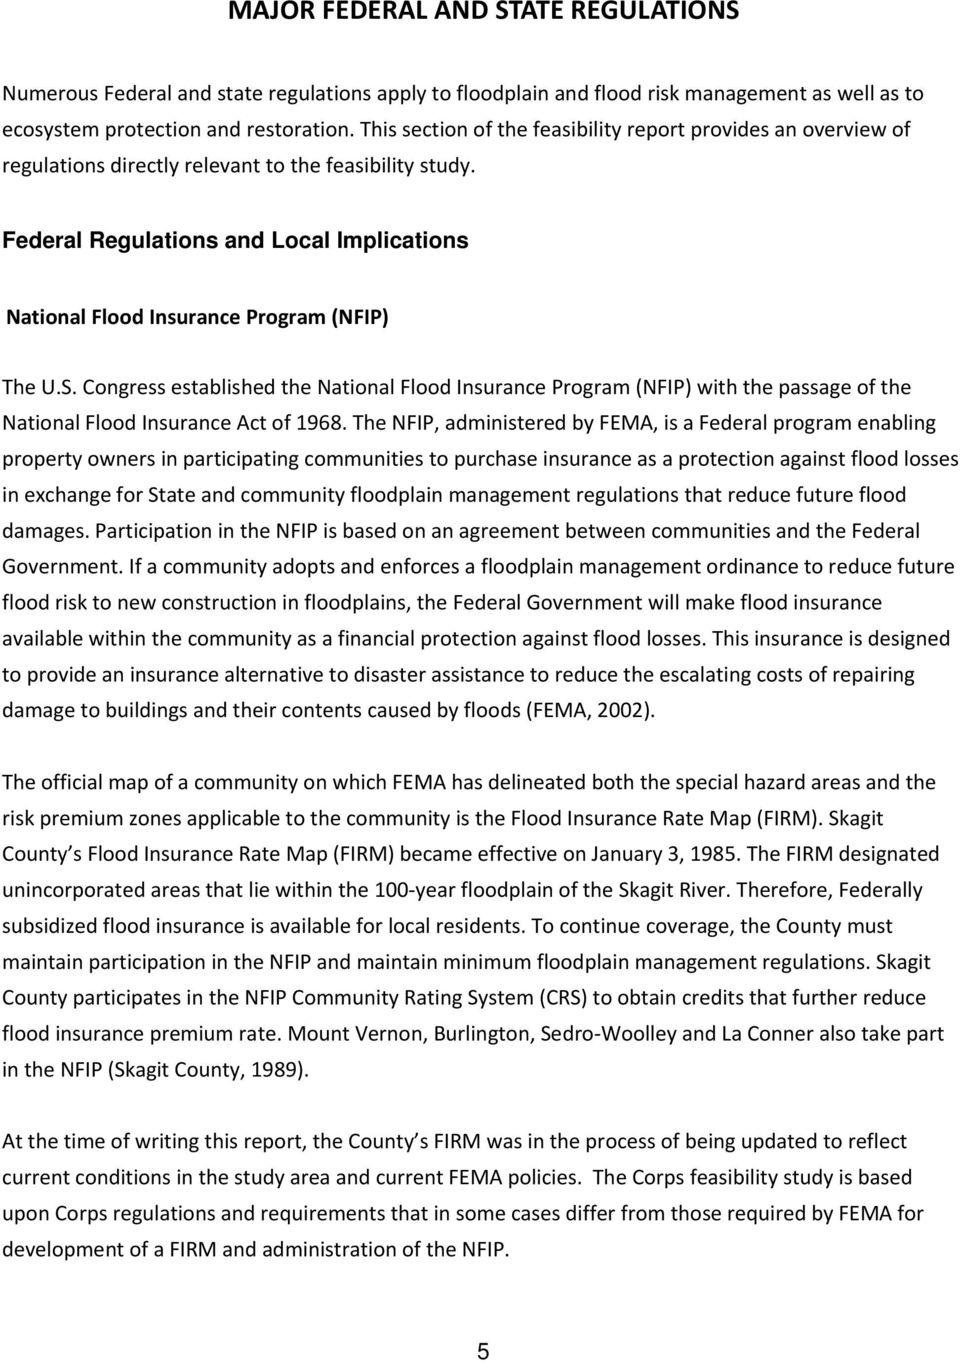 Federal Regulations and Local Implications National Flood Insurance Program (NFIP) The U.S.